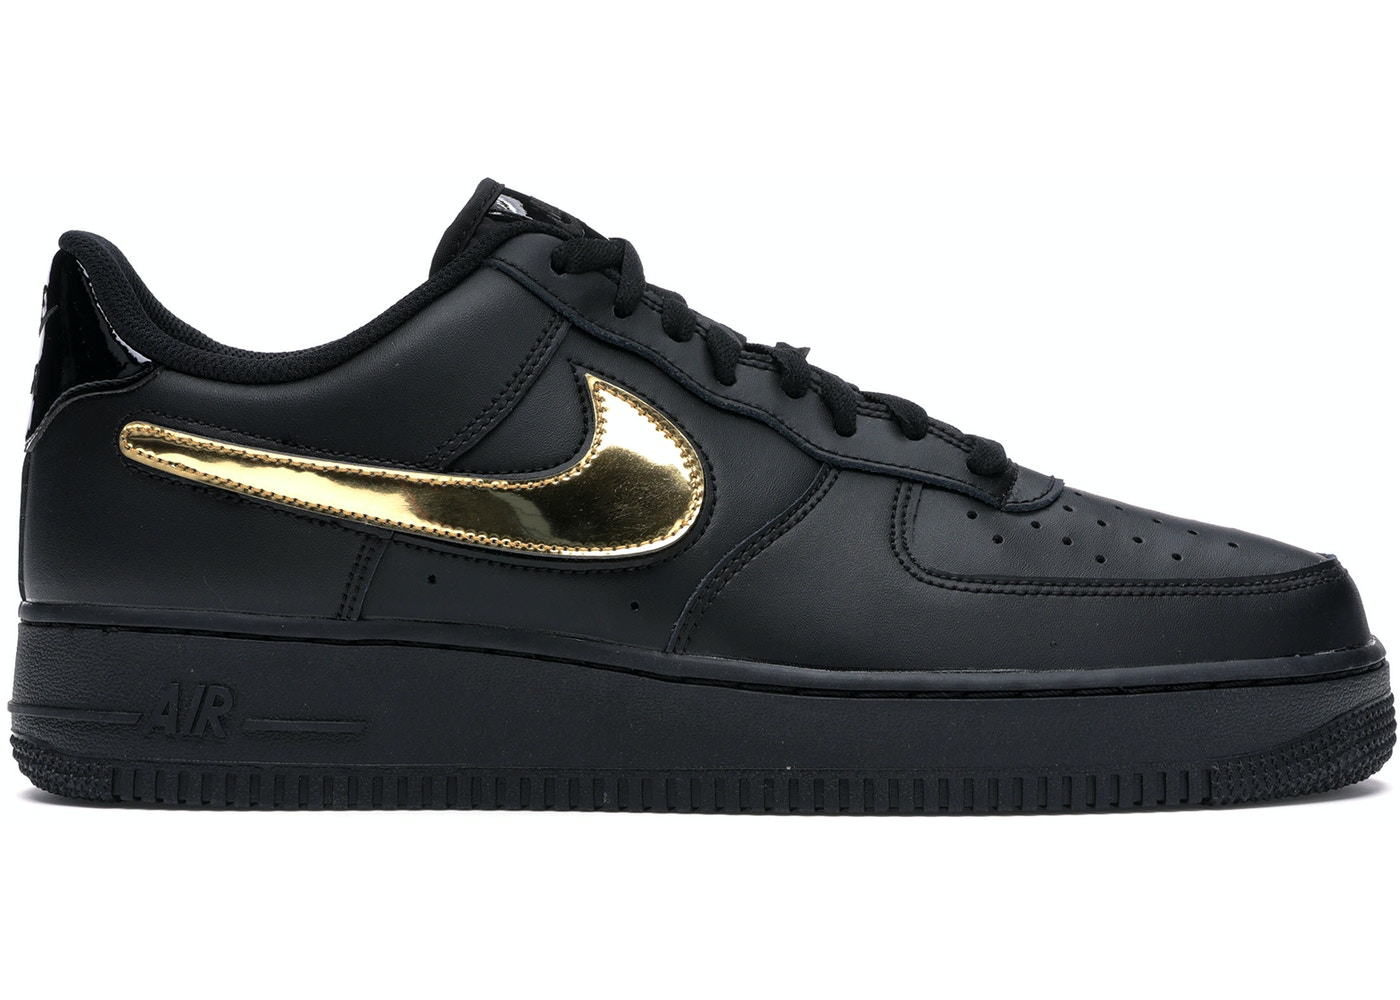 Nike Air Force 1 Black Metallic Gold Removable Swoosh Pack